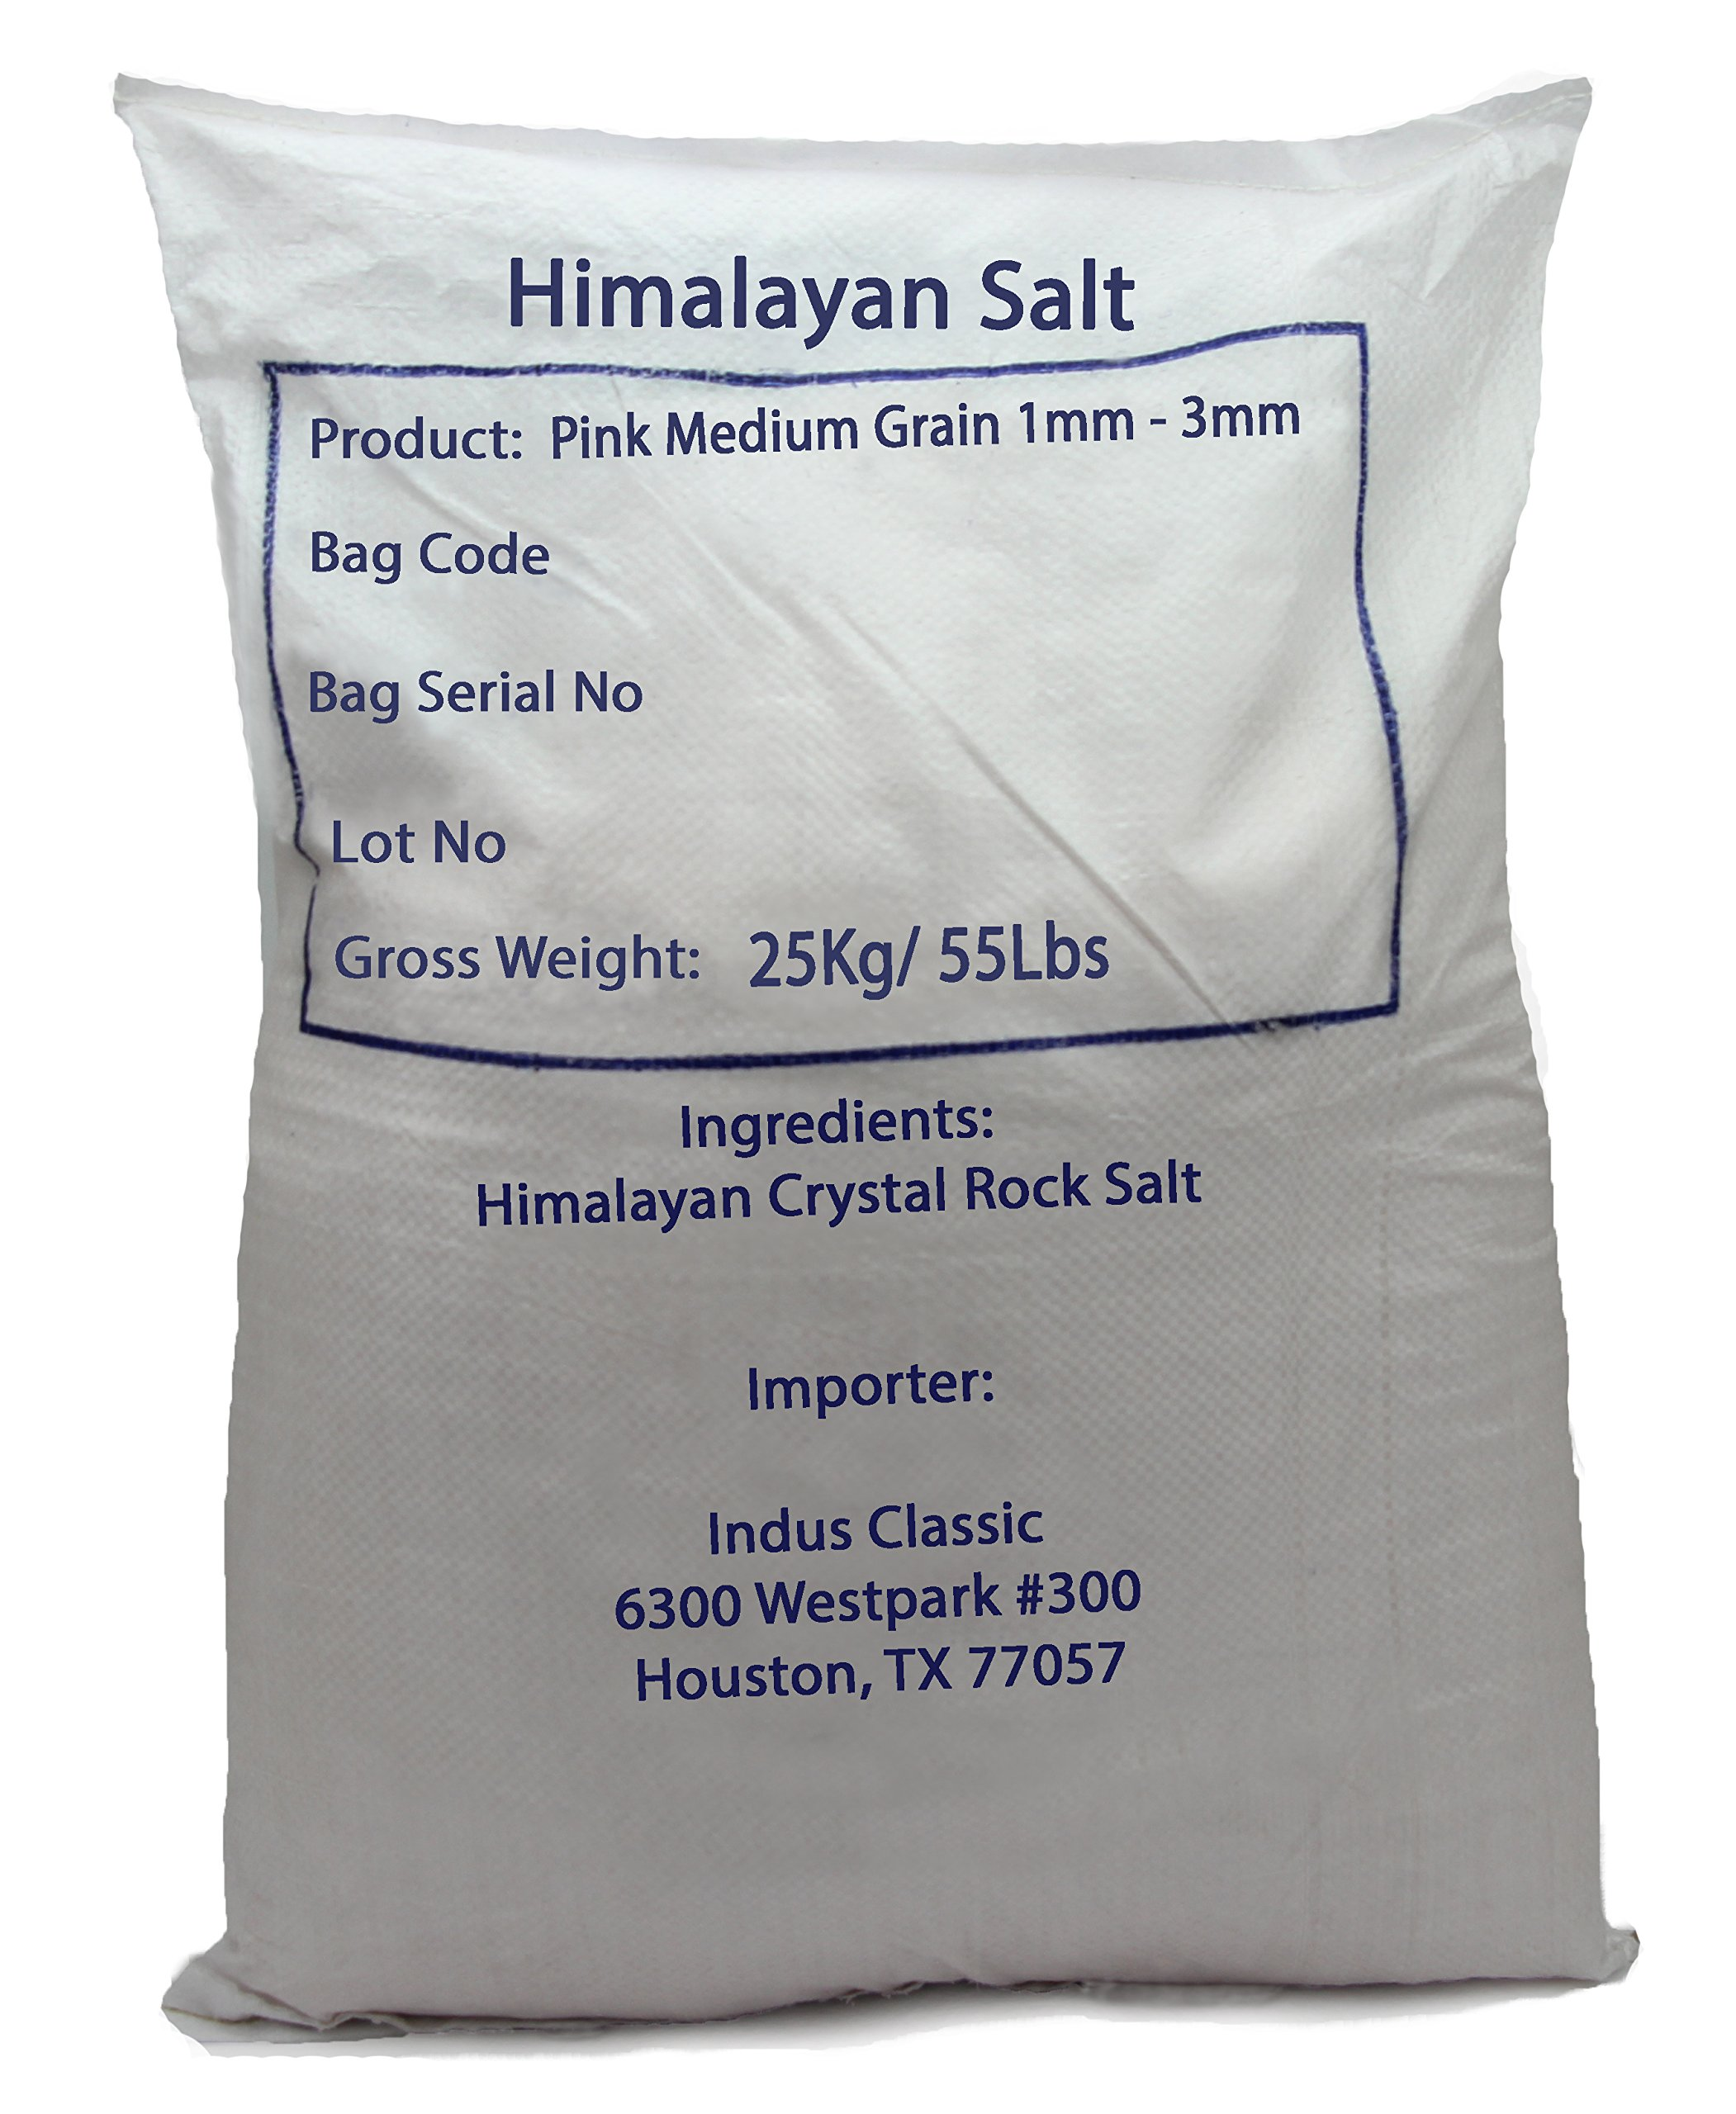 Indusclassic Authentic Pure Natural Halall Unprocessed Himalayan Edible Pink Cooking Salt --- 55 lbs Medium Coarse Grain 1~3mm